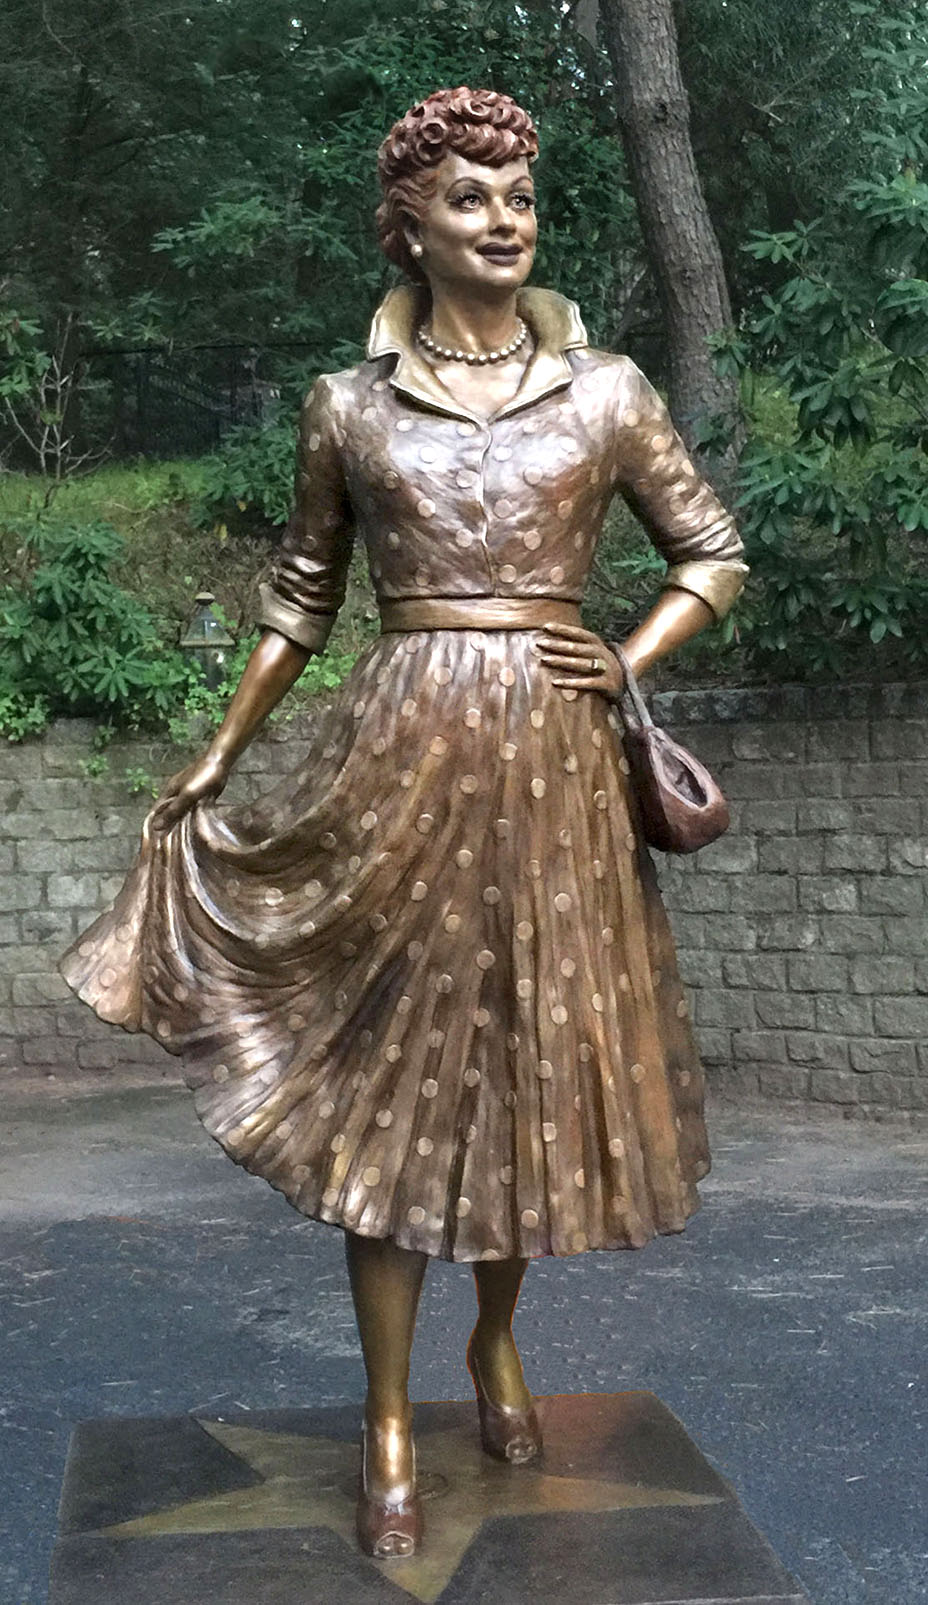 Full view of Carolyn Palmer's Lucy statue.